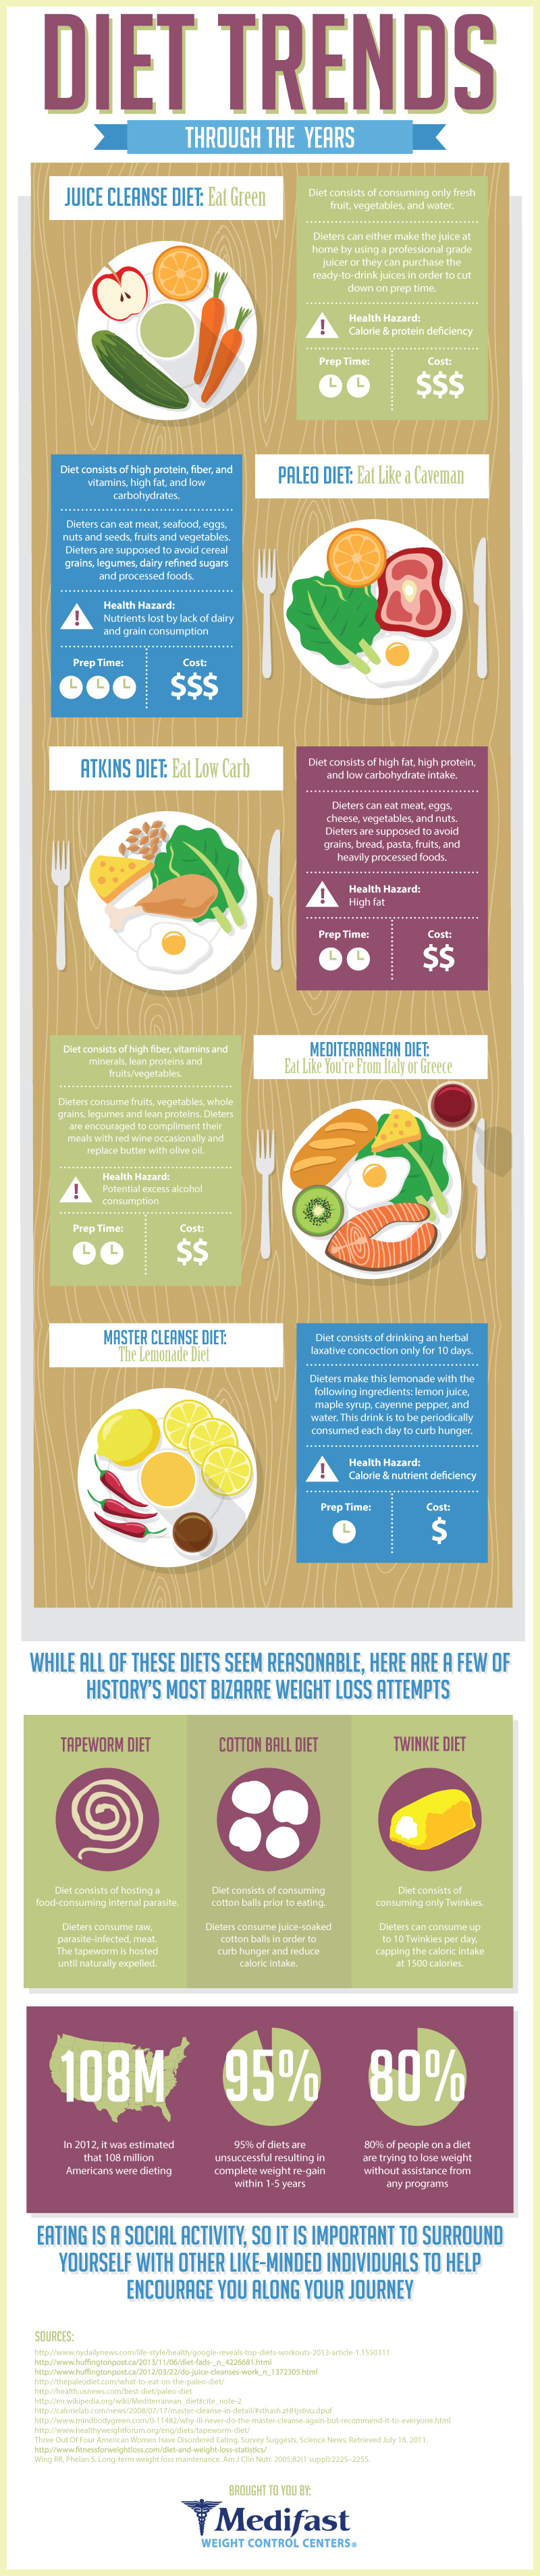 Top Diet Trends Throughout the Years